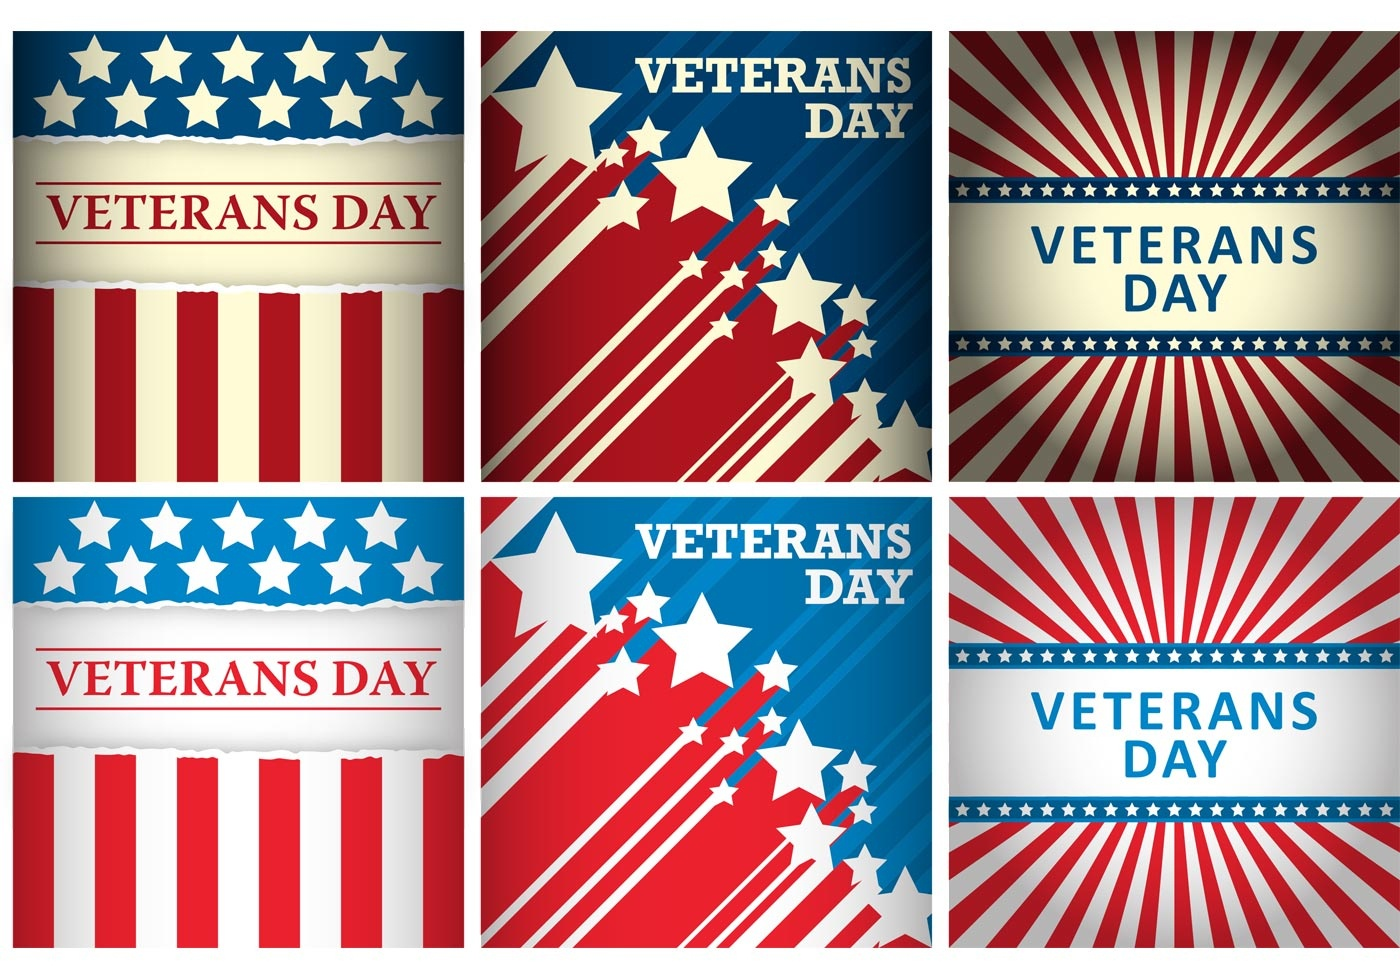 Veterans Day Free Printable Cards | Free Printable